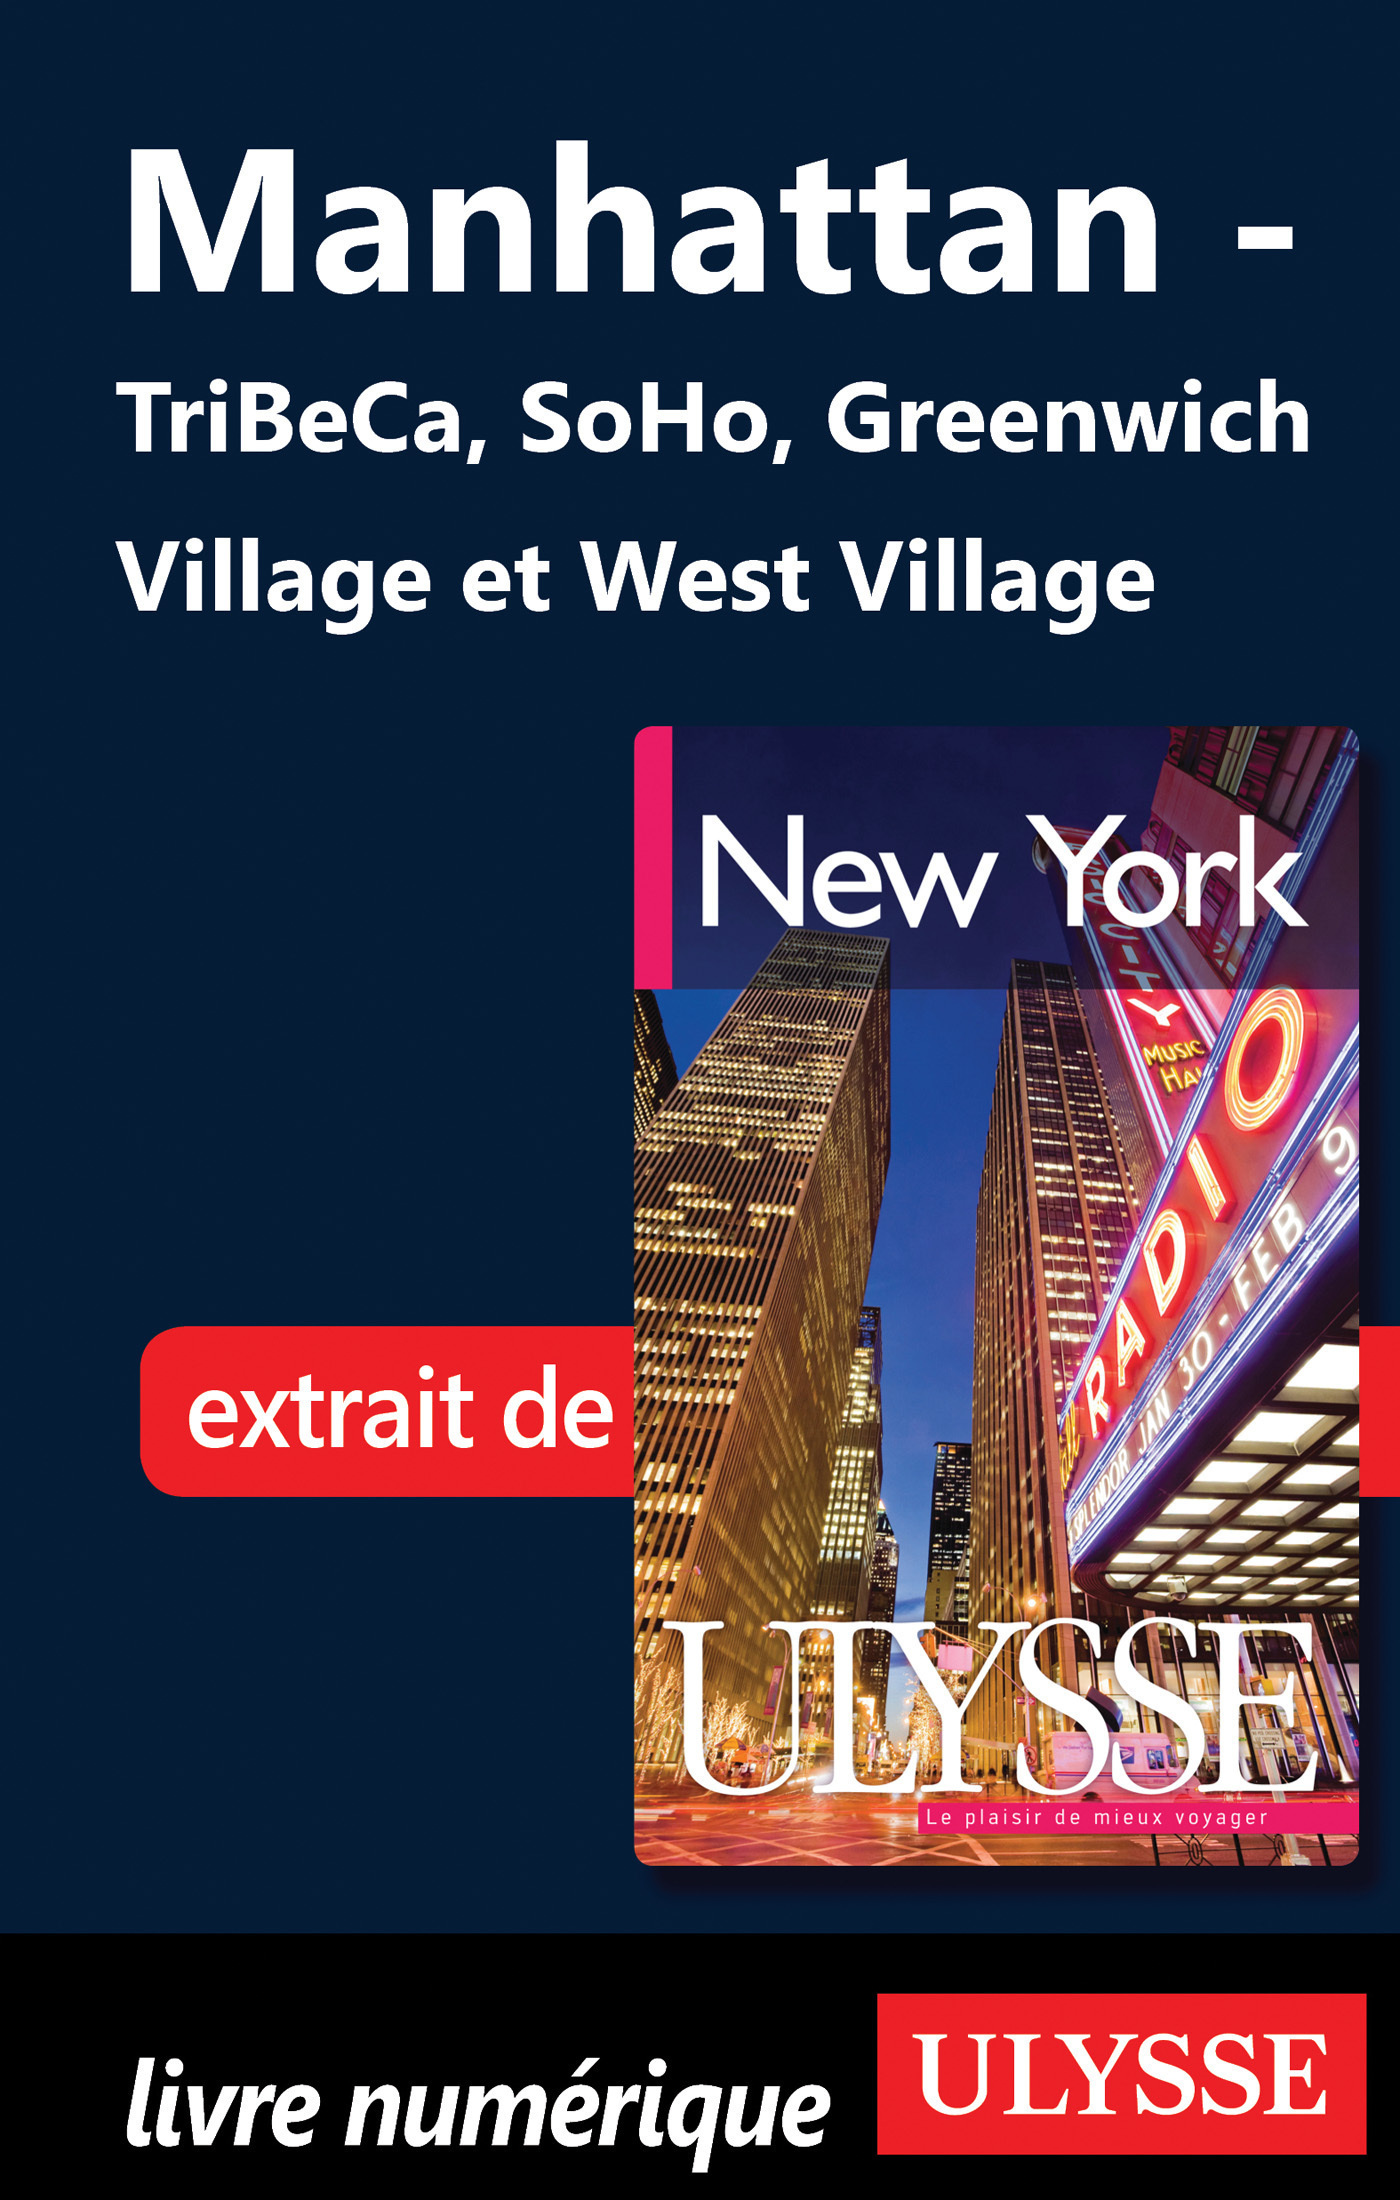 Manhattan: Tribeca, SoHo, Greenwich Village et West Village